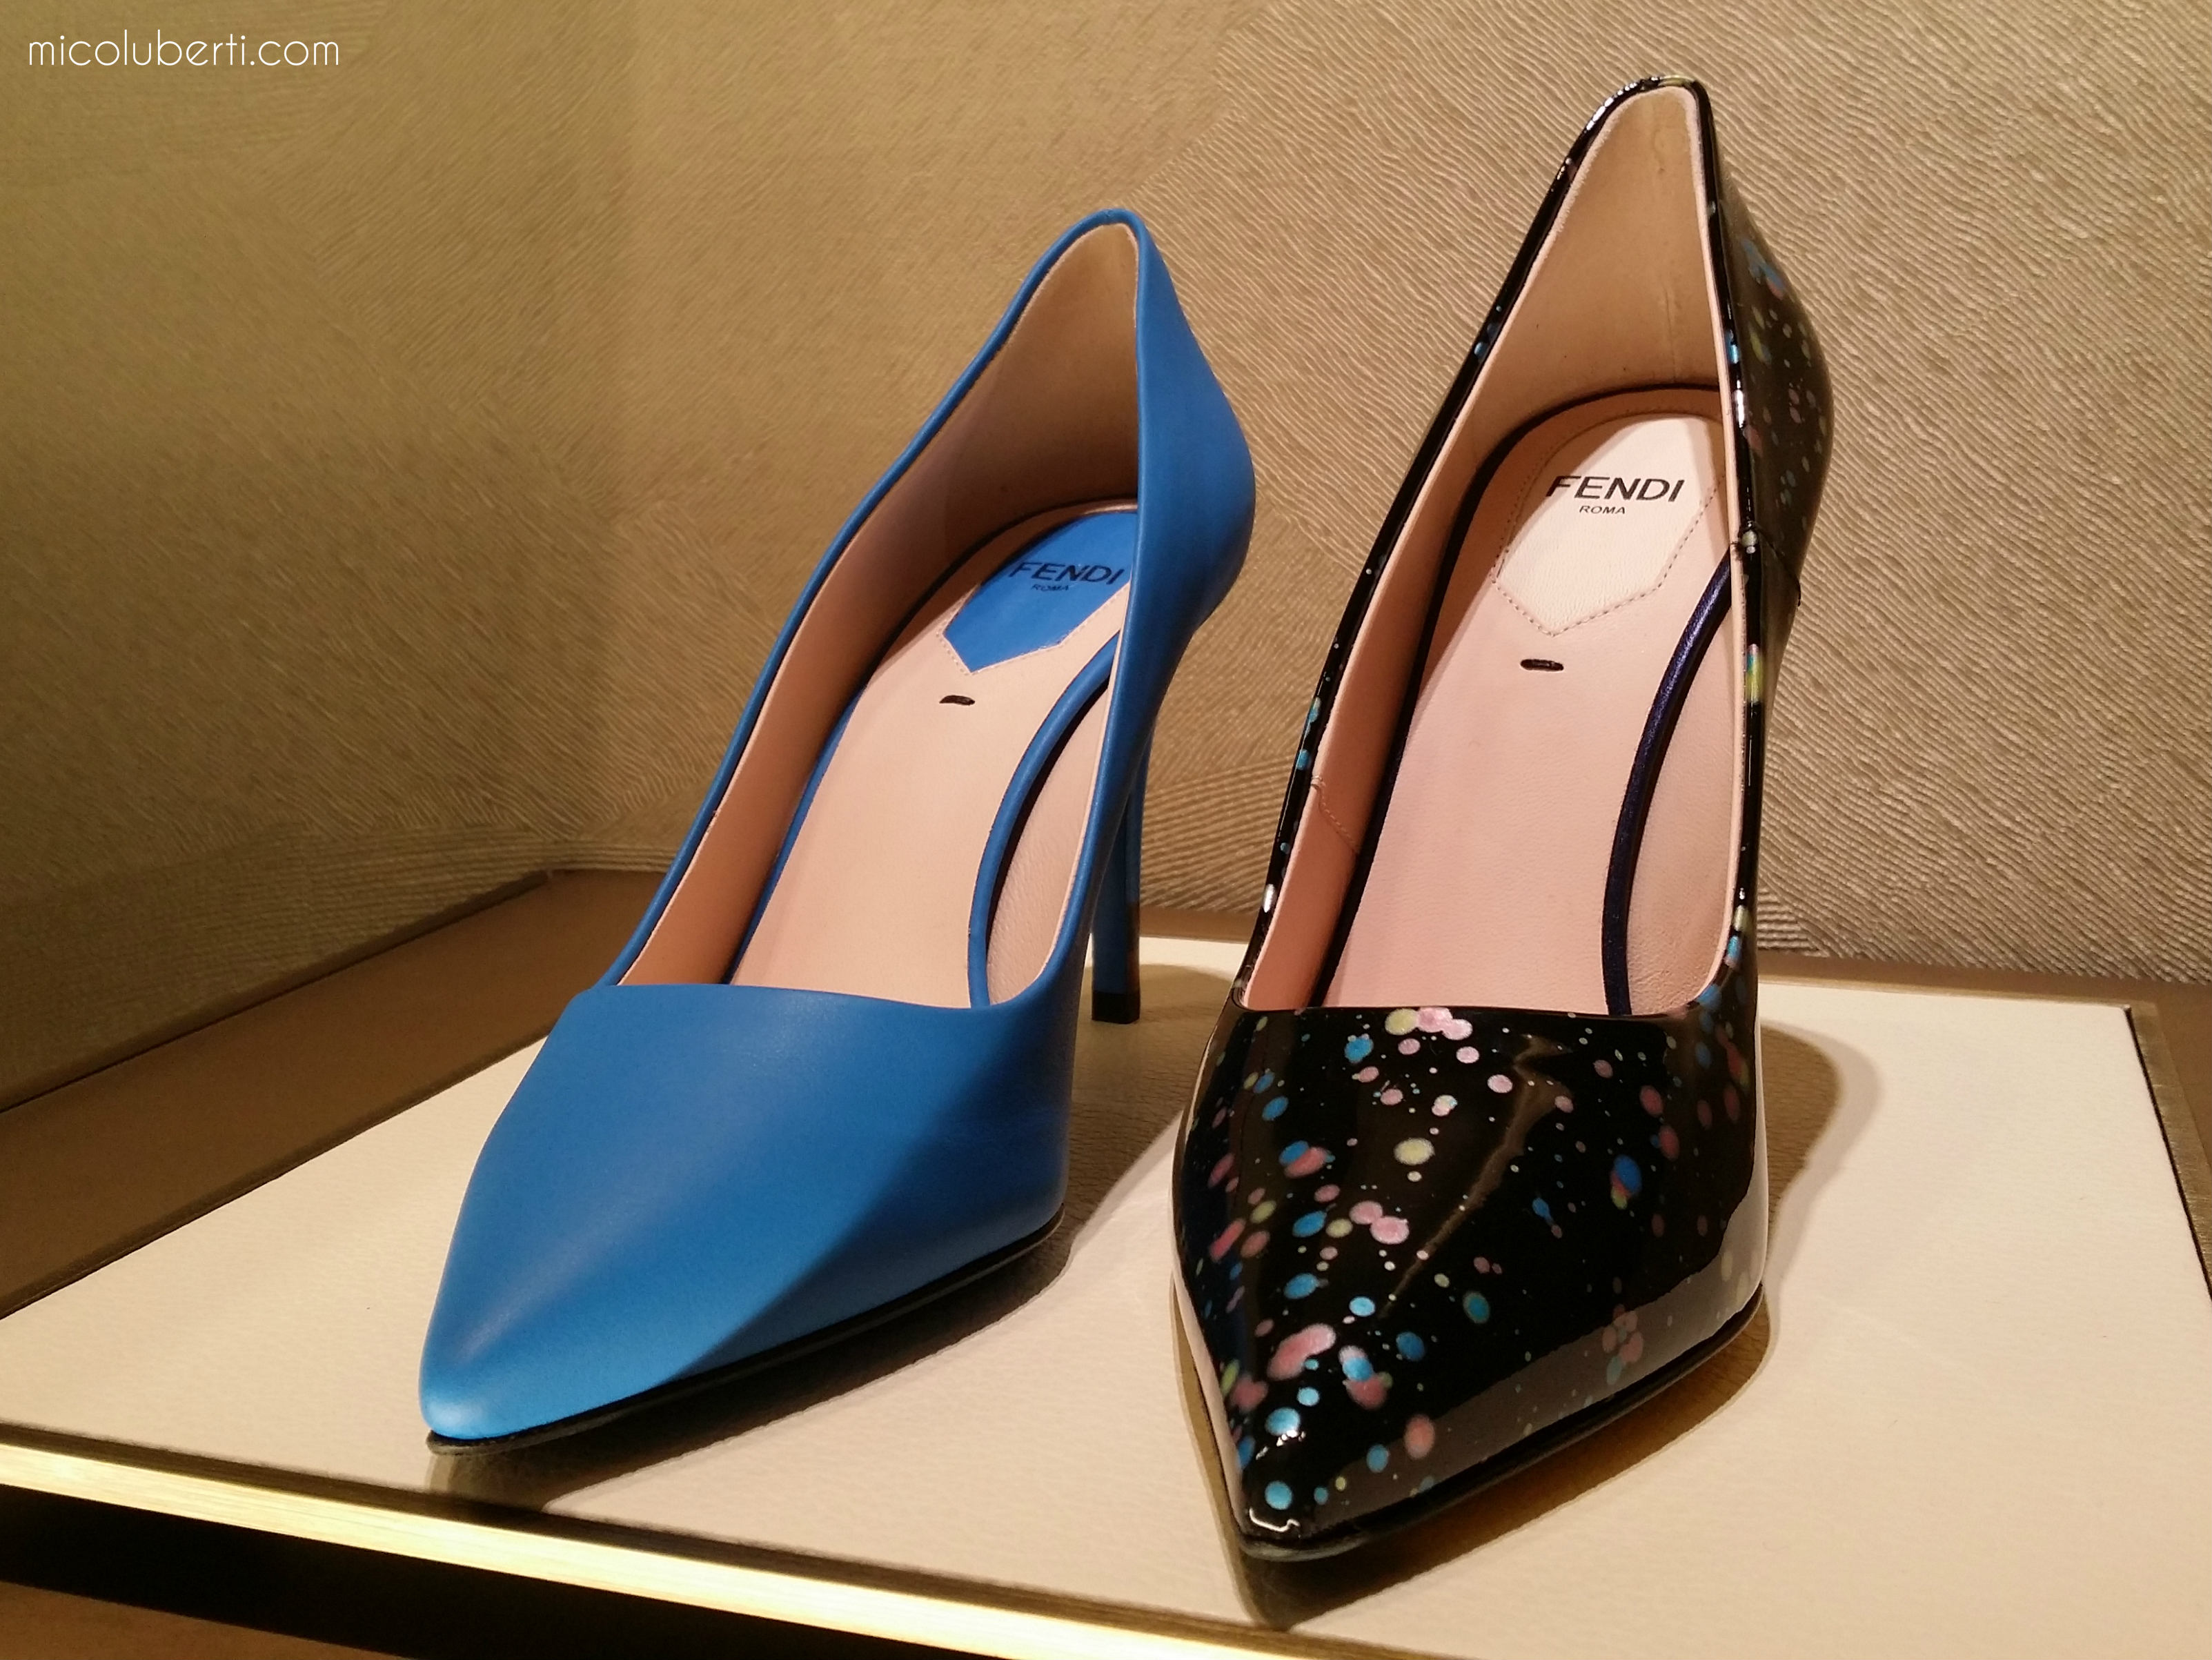 micoluberti_fendi_shoes_2